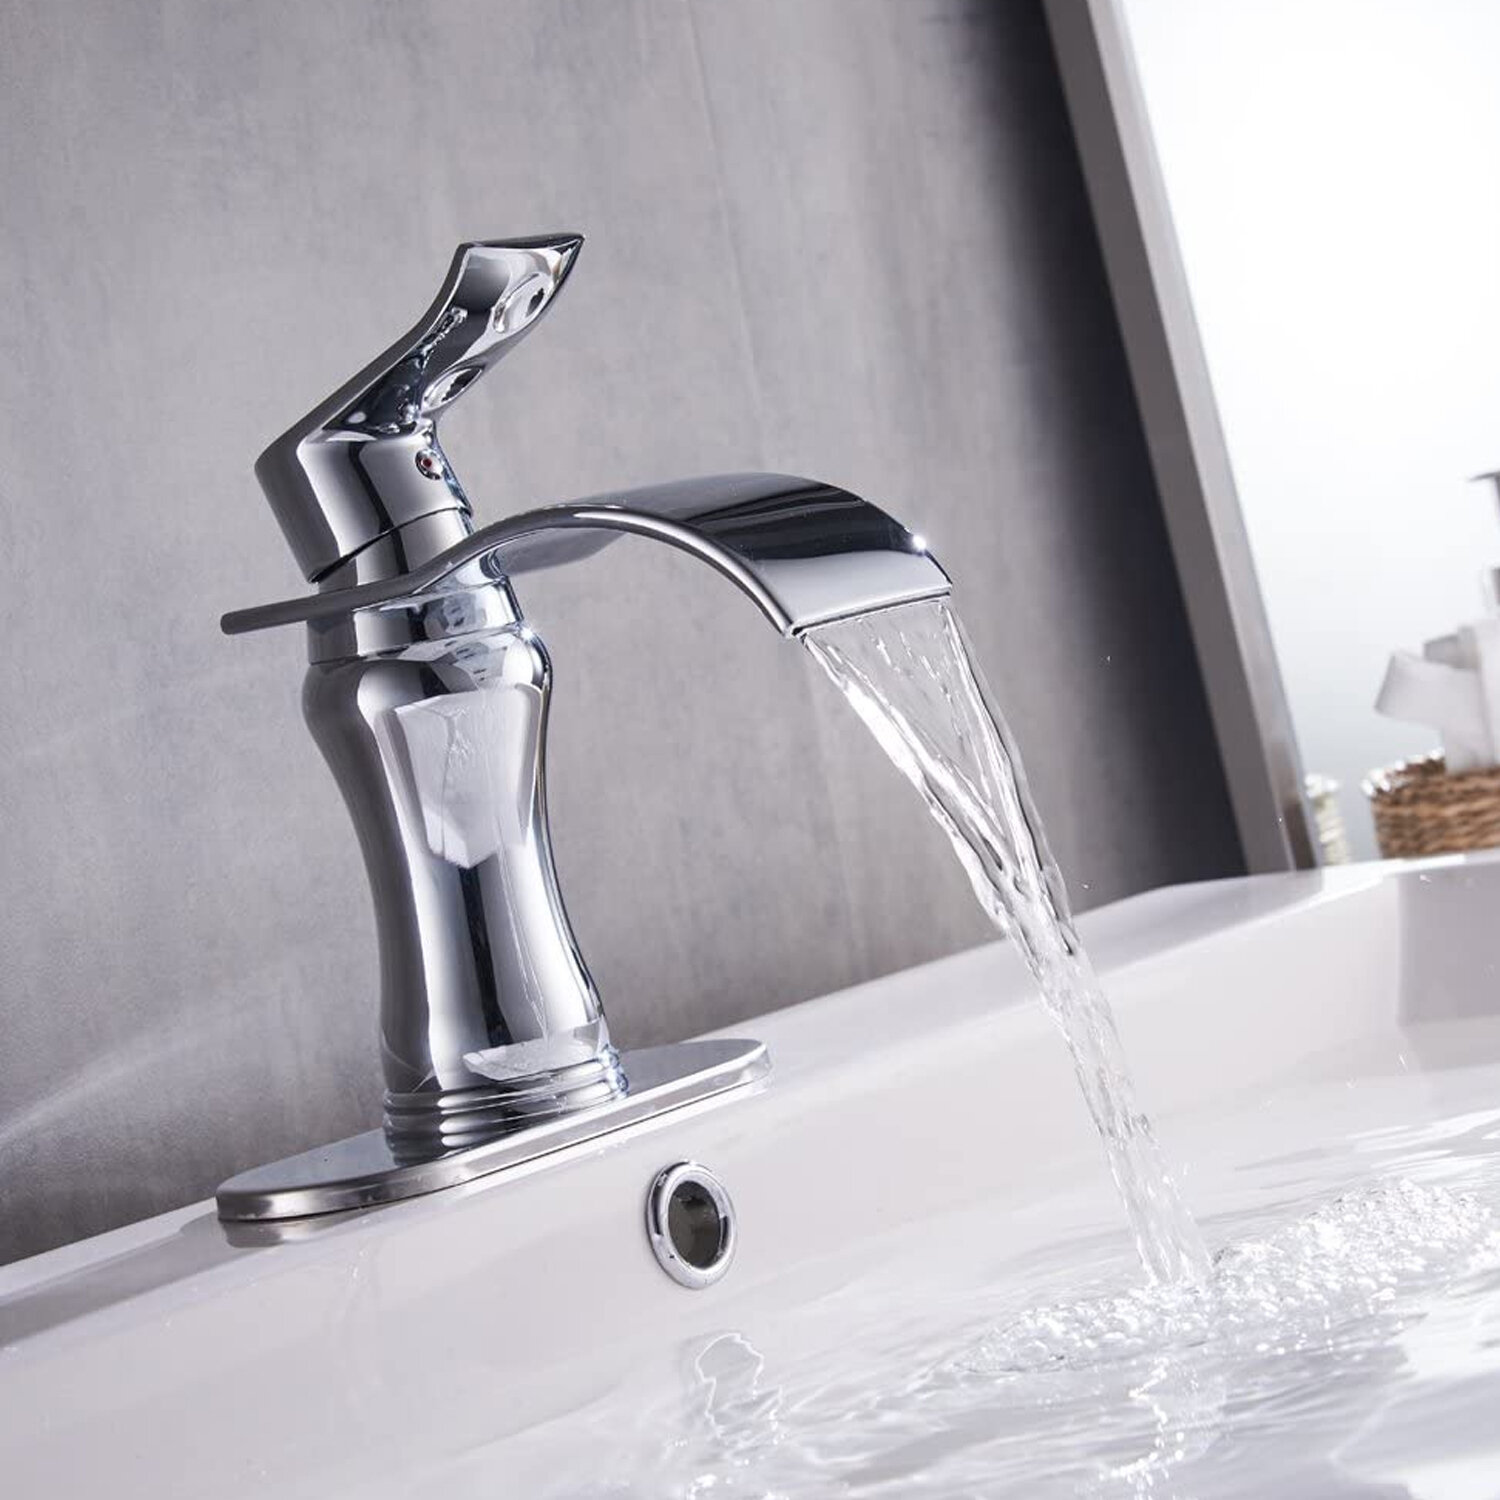 Waterfall Bathroom Faucet Stainless steel Single Handle Sink Tap 1Hole Mixer Tap